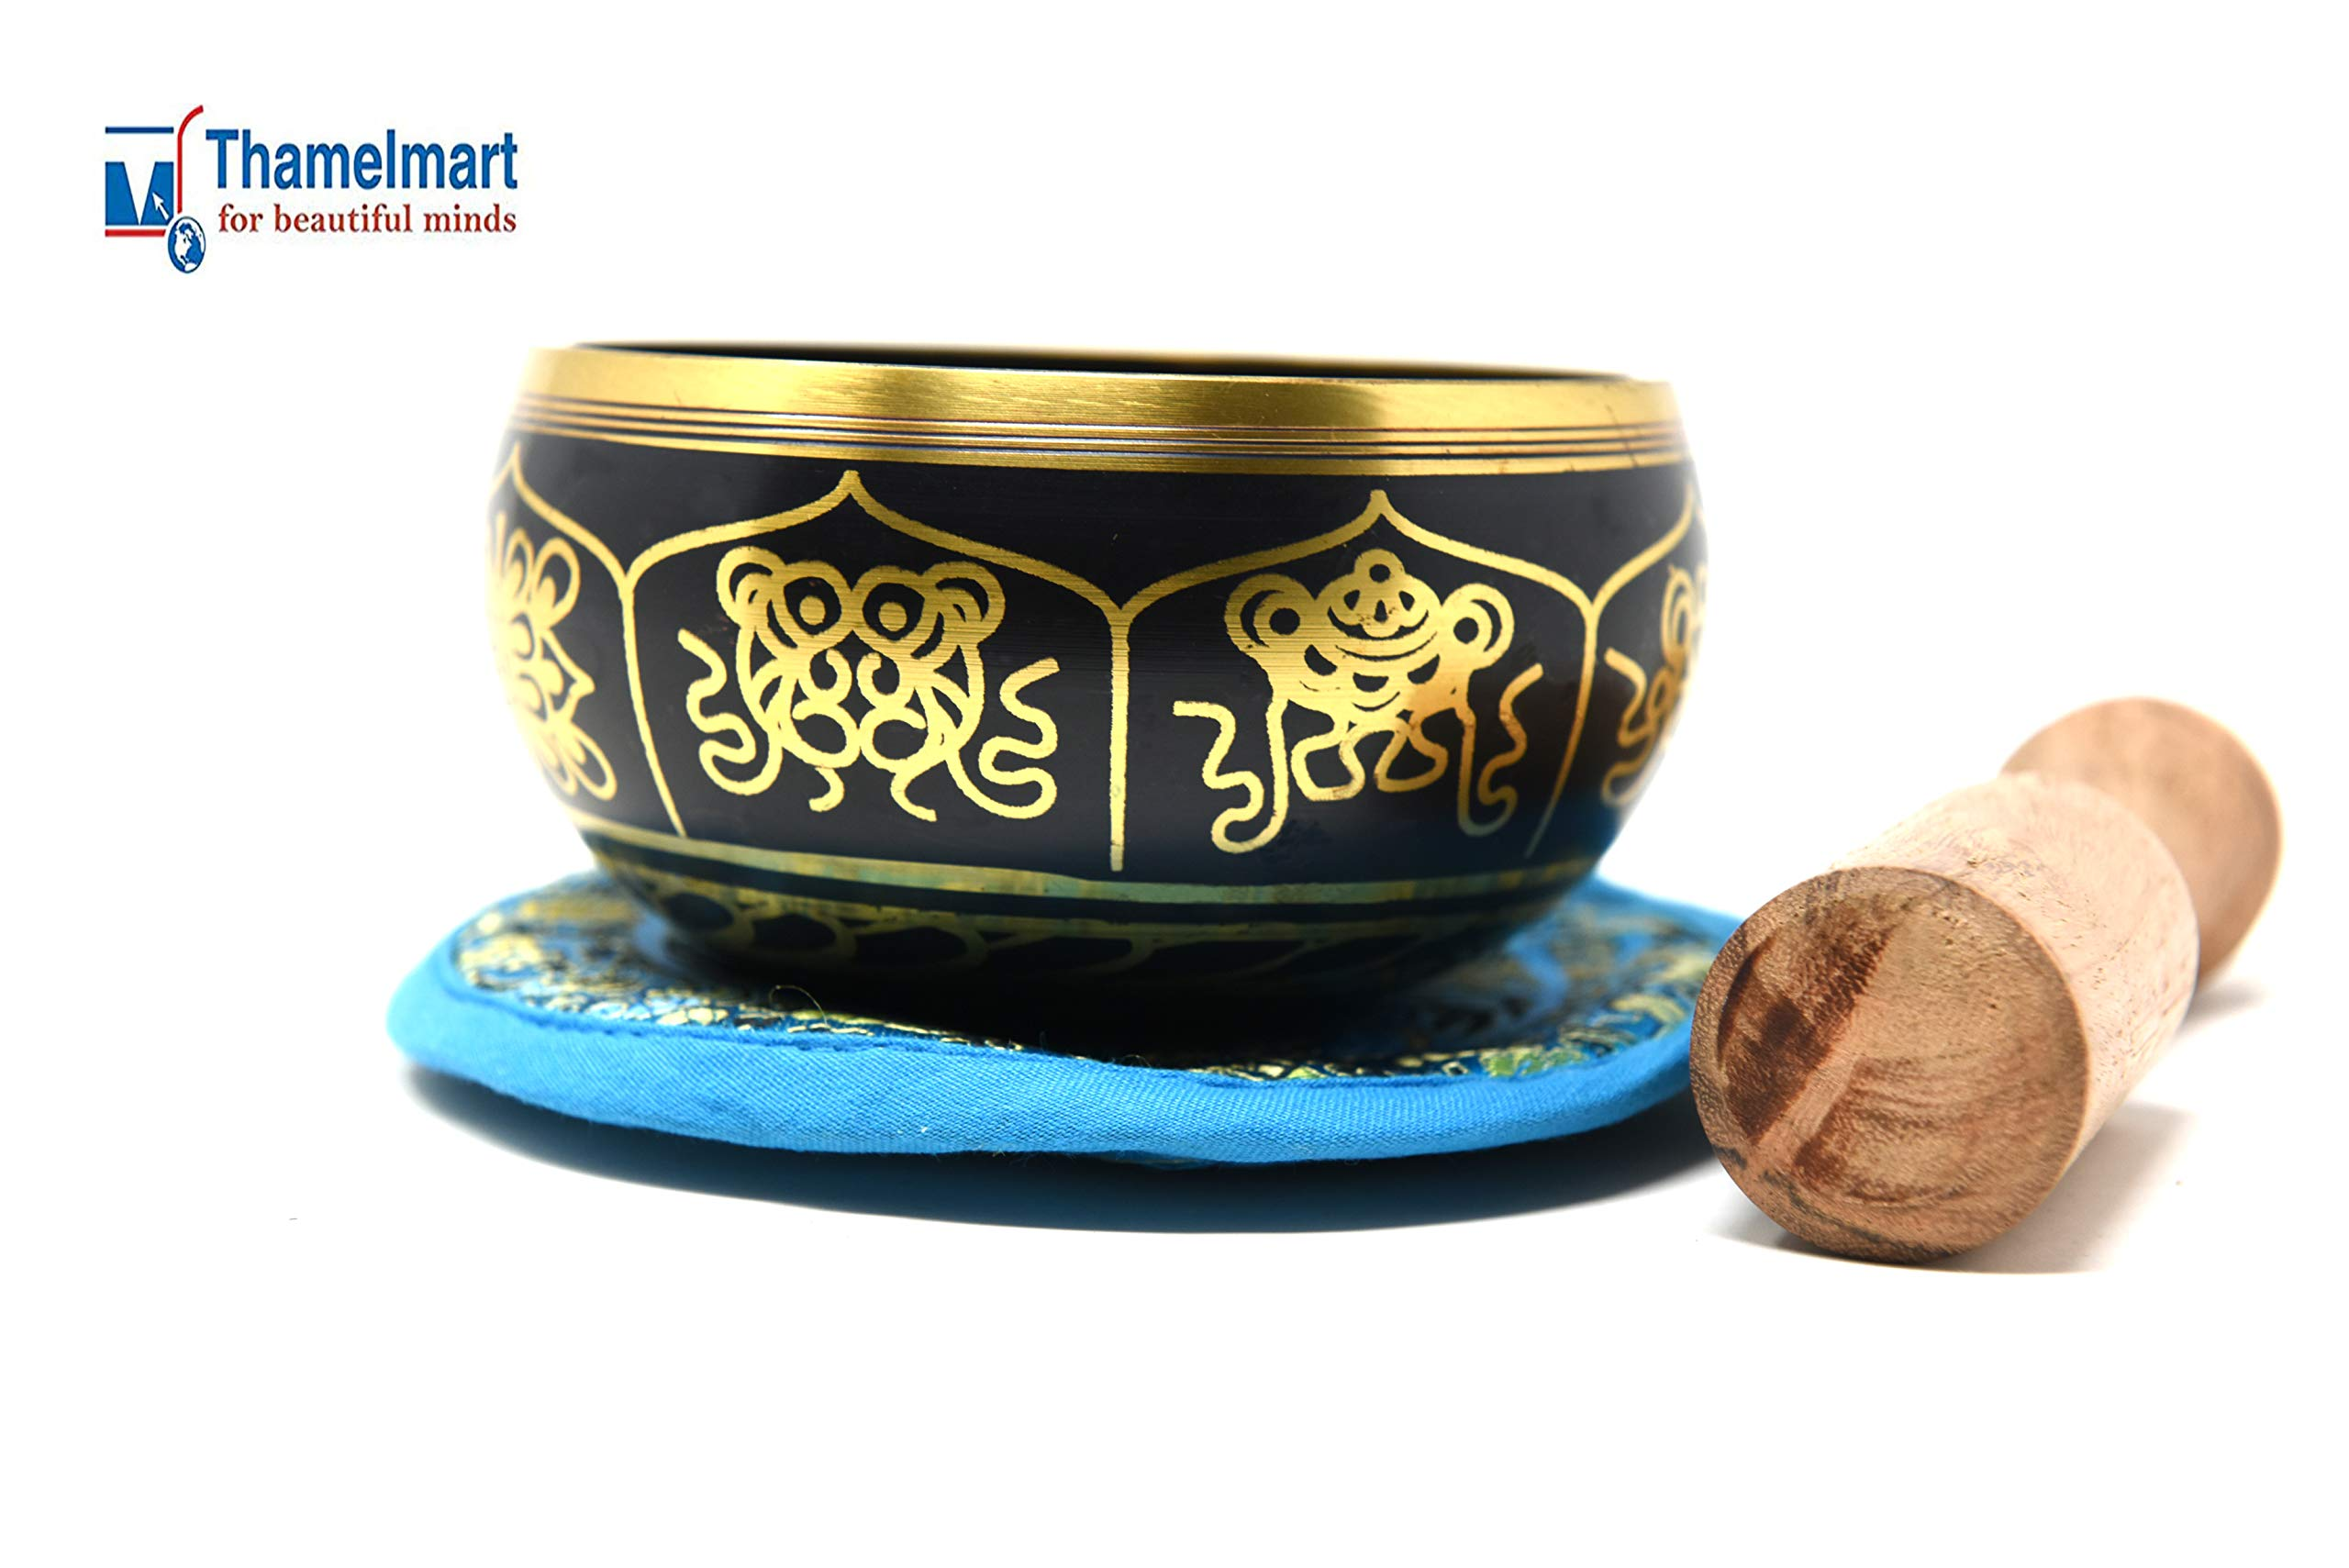 4'' Exquisite Tibetan Singing Bowl Set for Meditation ~ Auspicious Lucky Eight Symbols, Buddha Eye & Dorje Painted ~ Silk Cushion & Wooden Mallet Included ~Handmade in Nepal by Thamelmart by TM THAMELMART FOR BEAUTIFUL MINDS